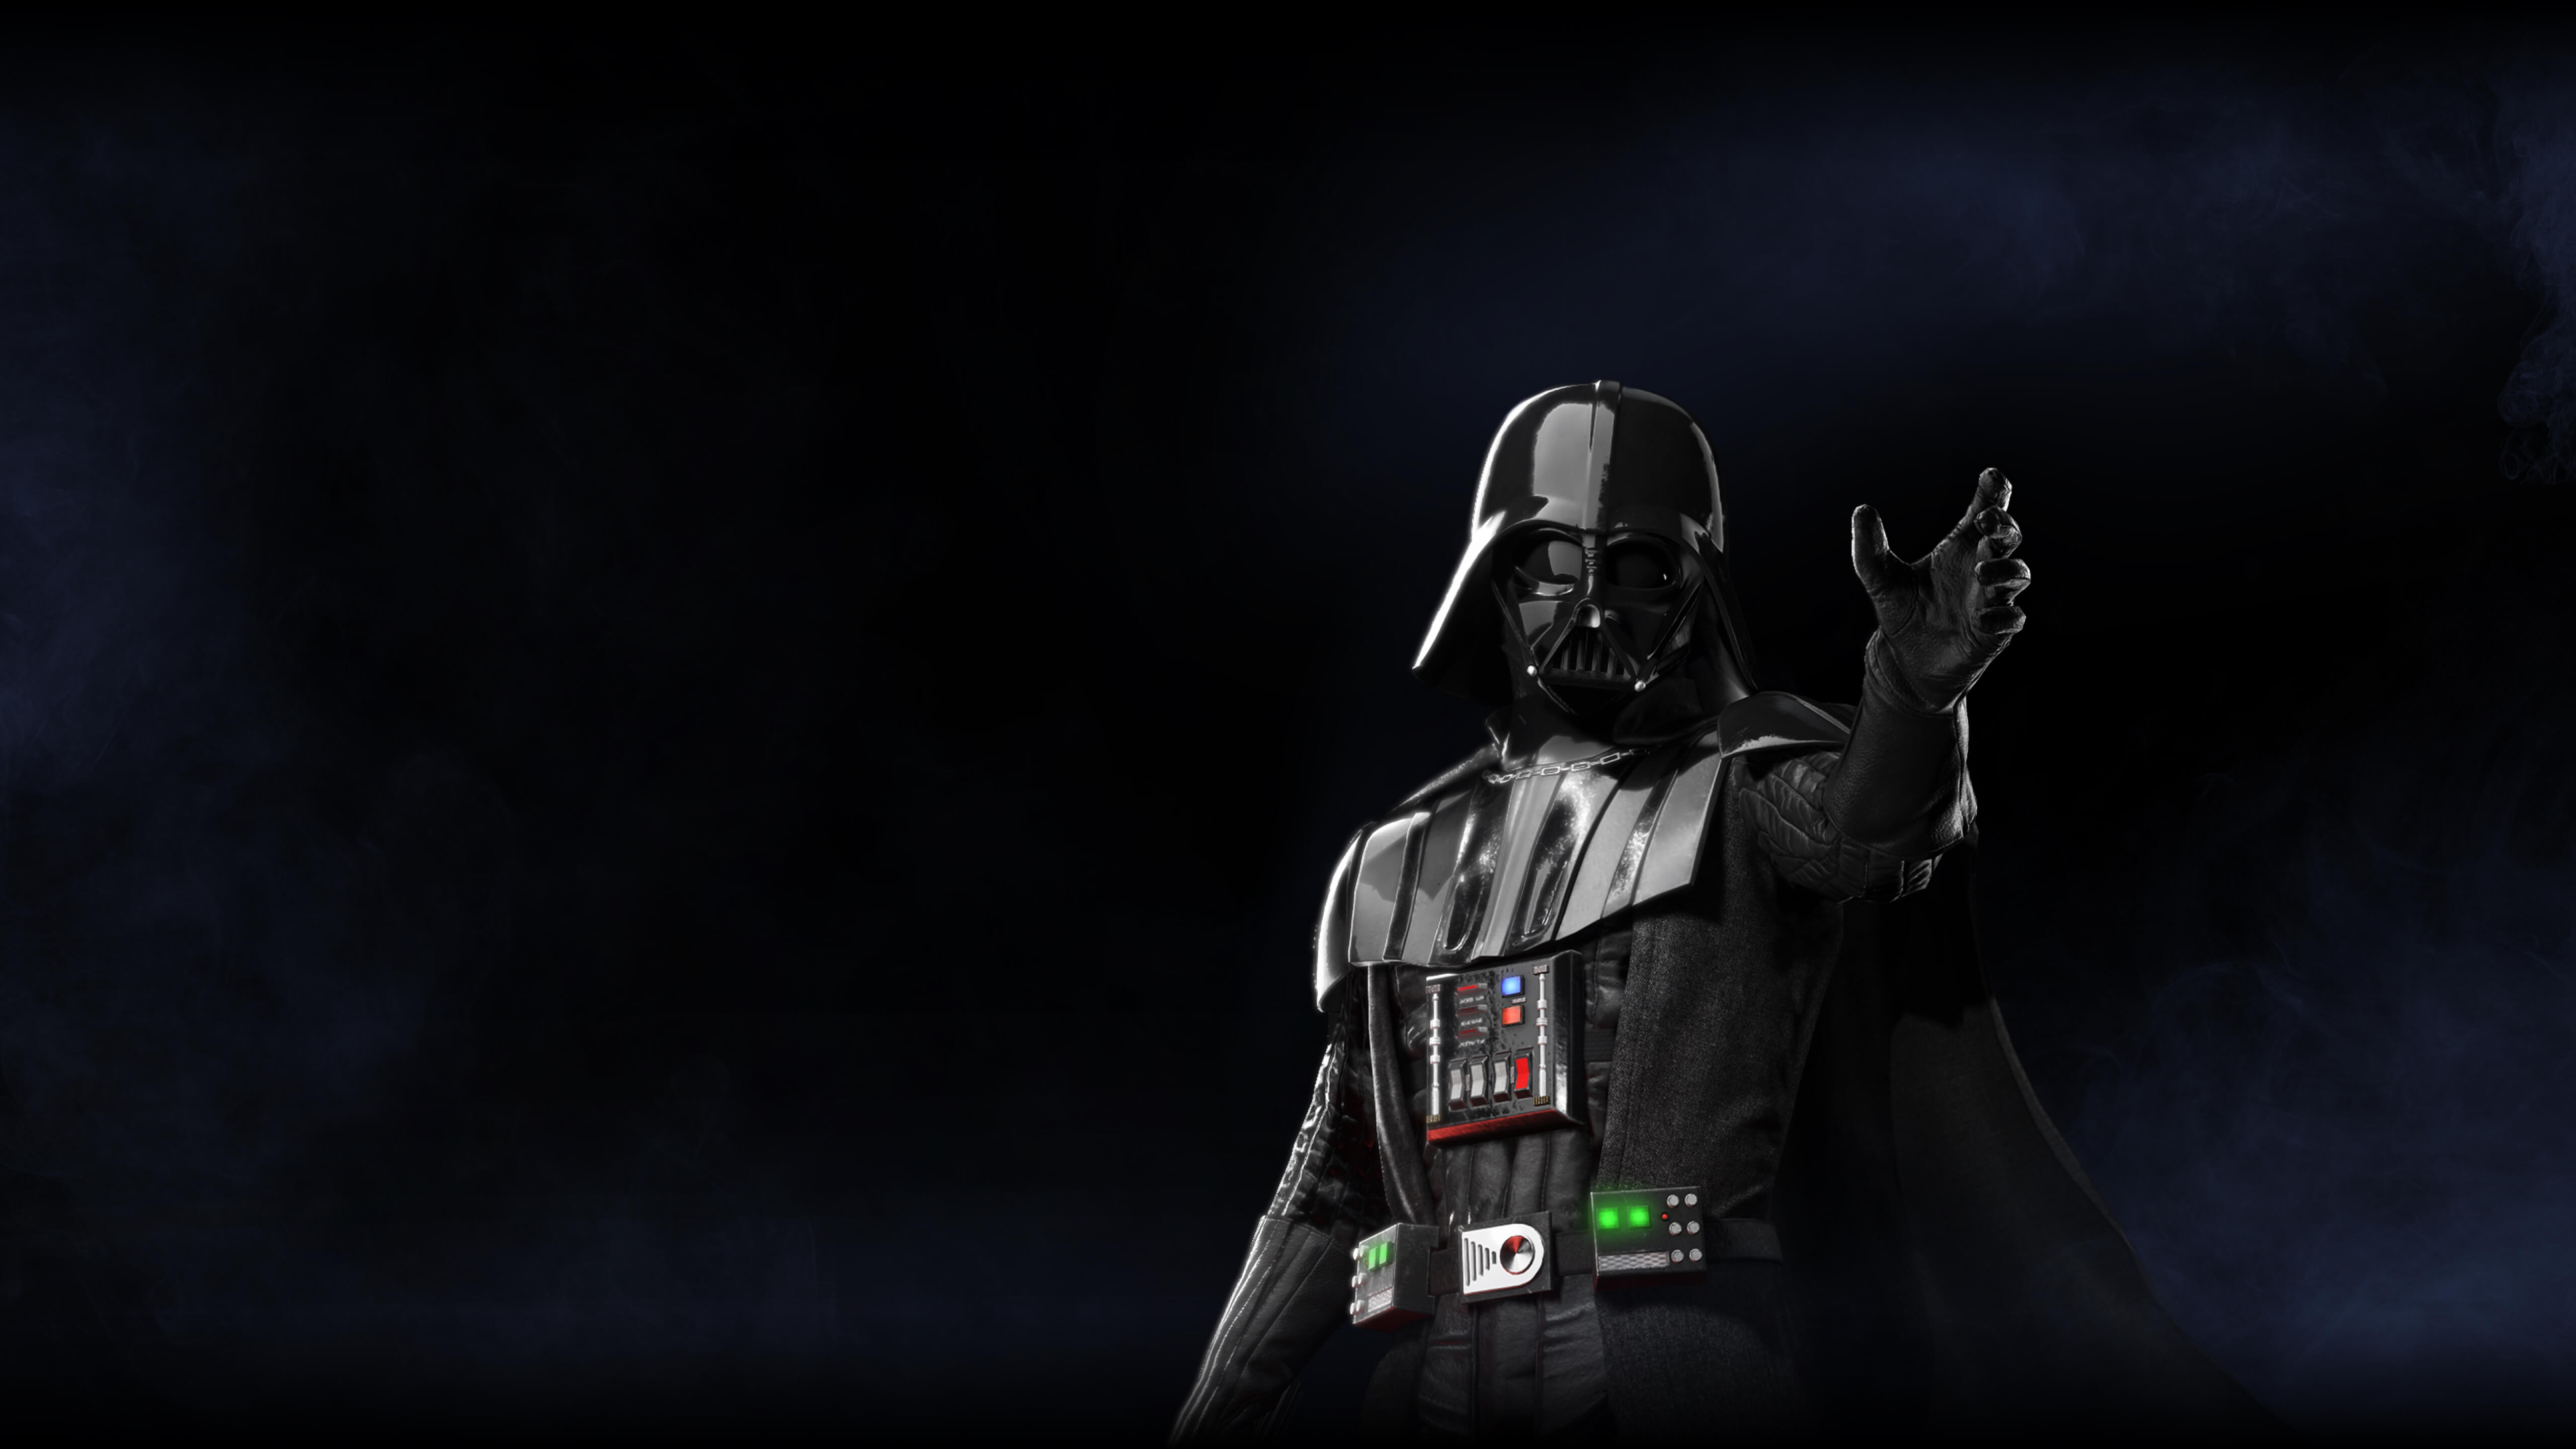 240x320 Darth Vader Star Wars Battlefront 2 Nokia 230 Nokia 215 Samsung Xcover 550 Lg G350 Android Hd 4k Wallpapers Images Backgrounds Photos And Pictures